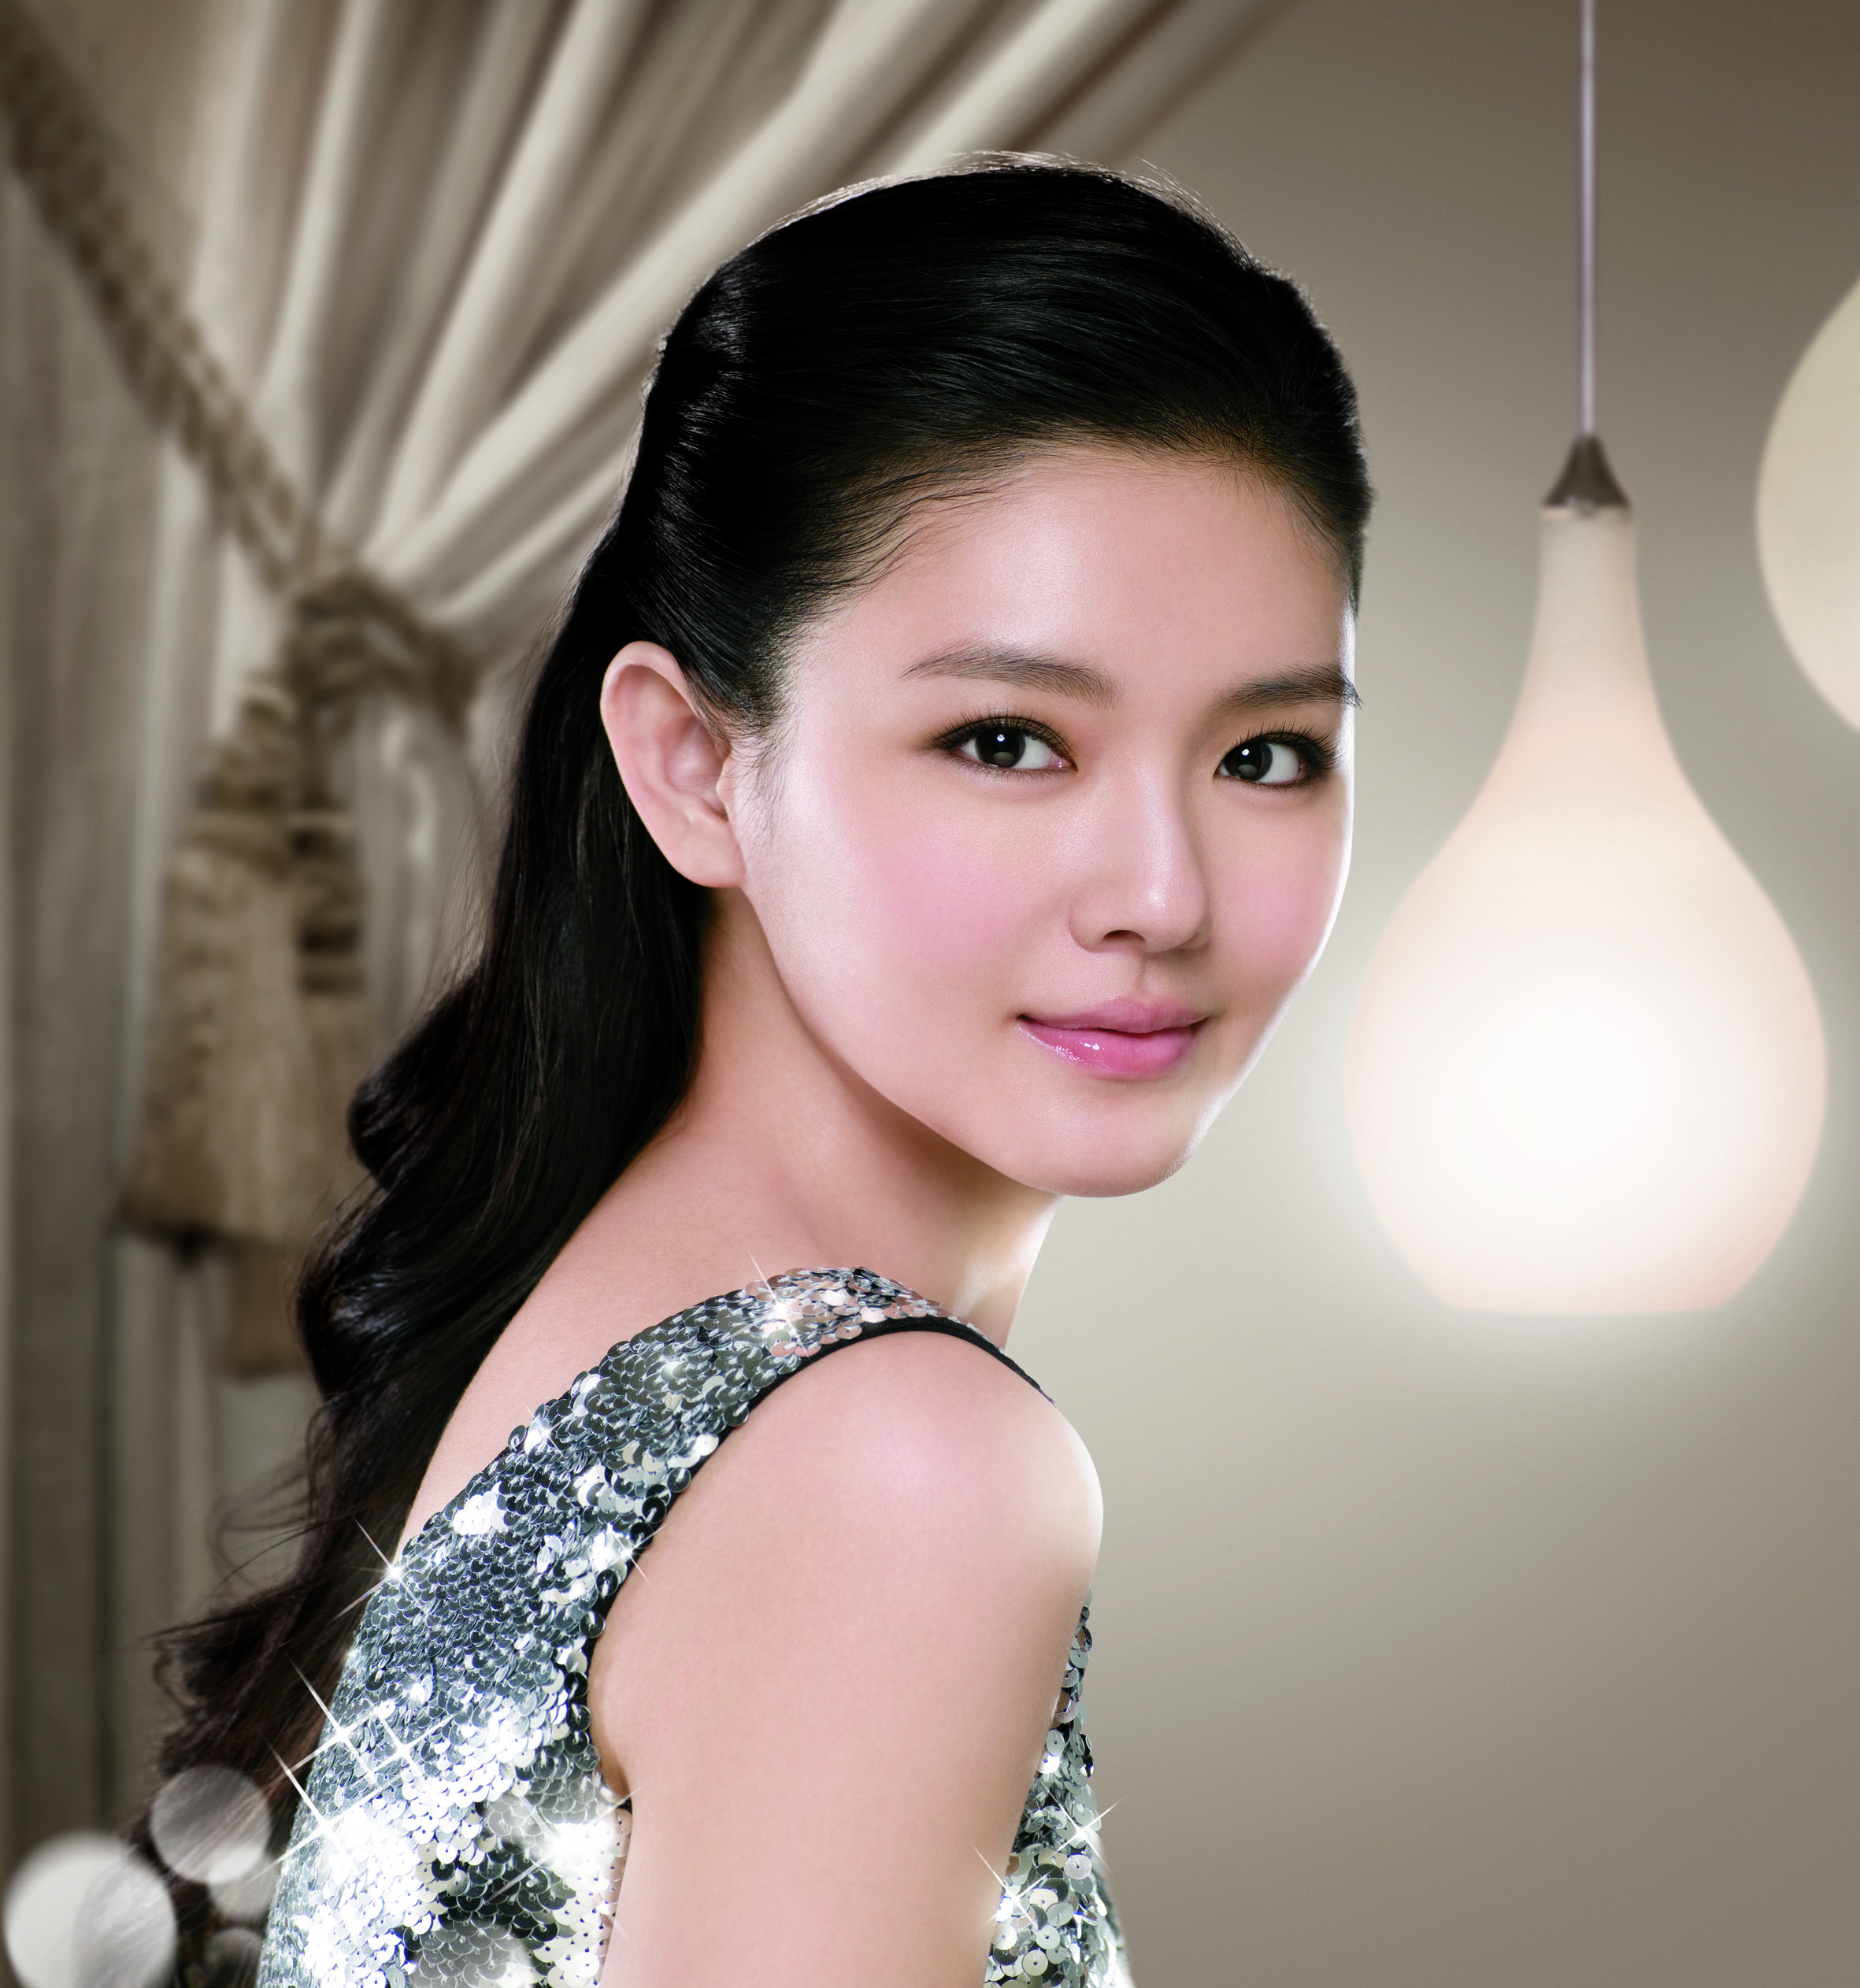 2362x2525 - Barbie Hsu Wallpapers 18